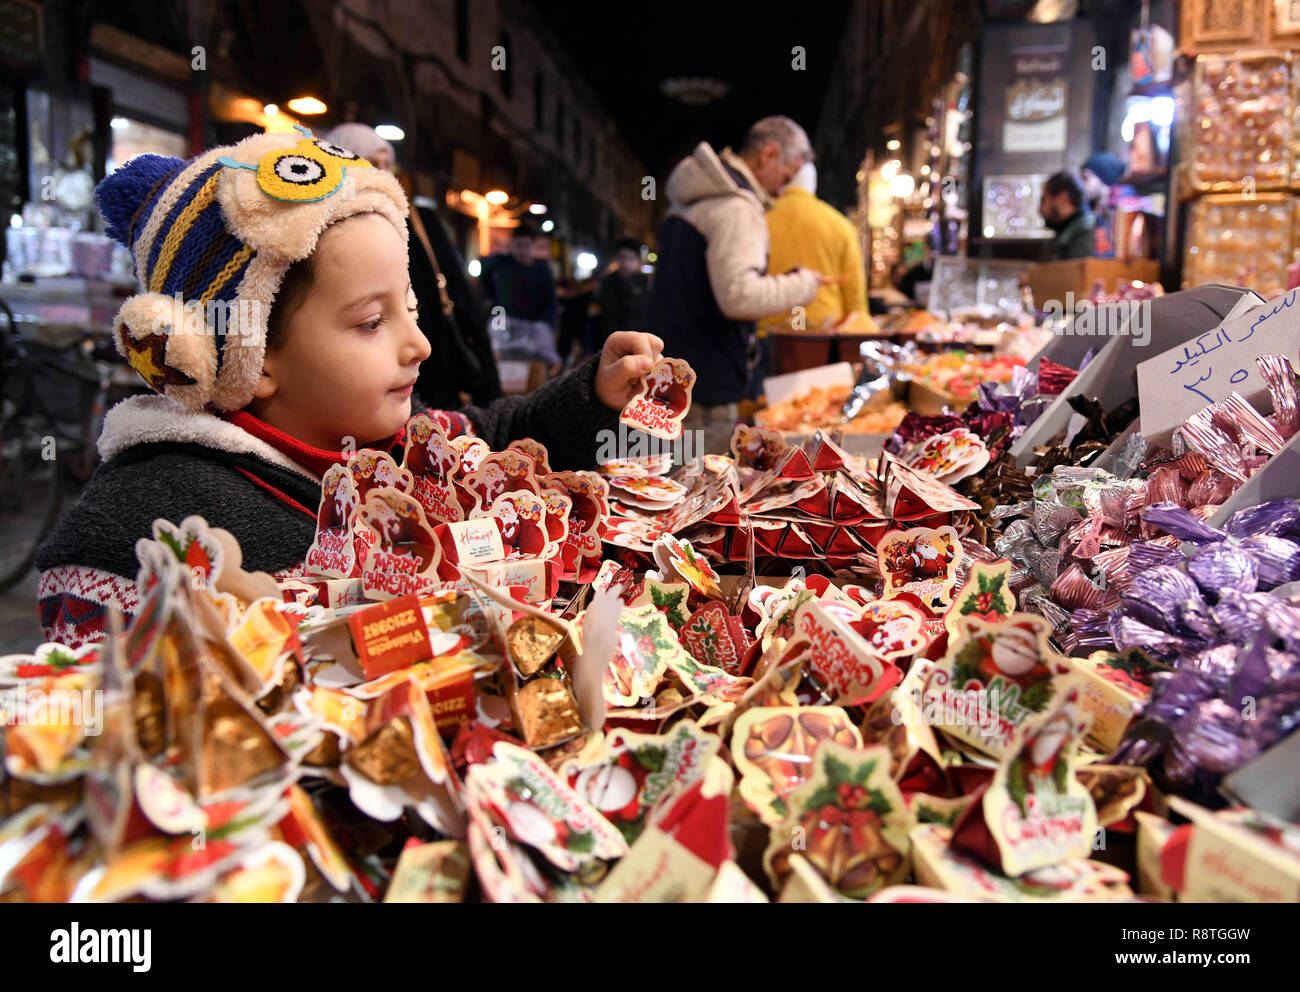 Damascus, Syria. 17th Dec, 2018. A Syrian girl selects candies at a marketplace in the old city of Damascus, capital of Syria, on Dec. 17, 2018. As Christmas and the New Year approach, Syrians in Damascus shopped for gifts, candies and decorations at marketplaces. Credit: Ammar Safarjalani/Xinhua/Alamy Live News - Stock Image